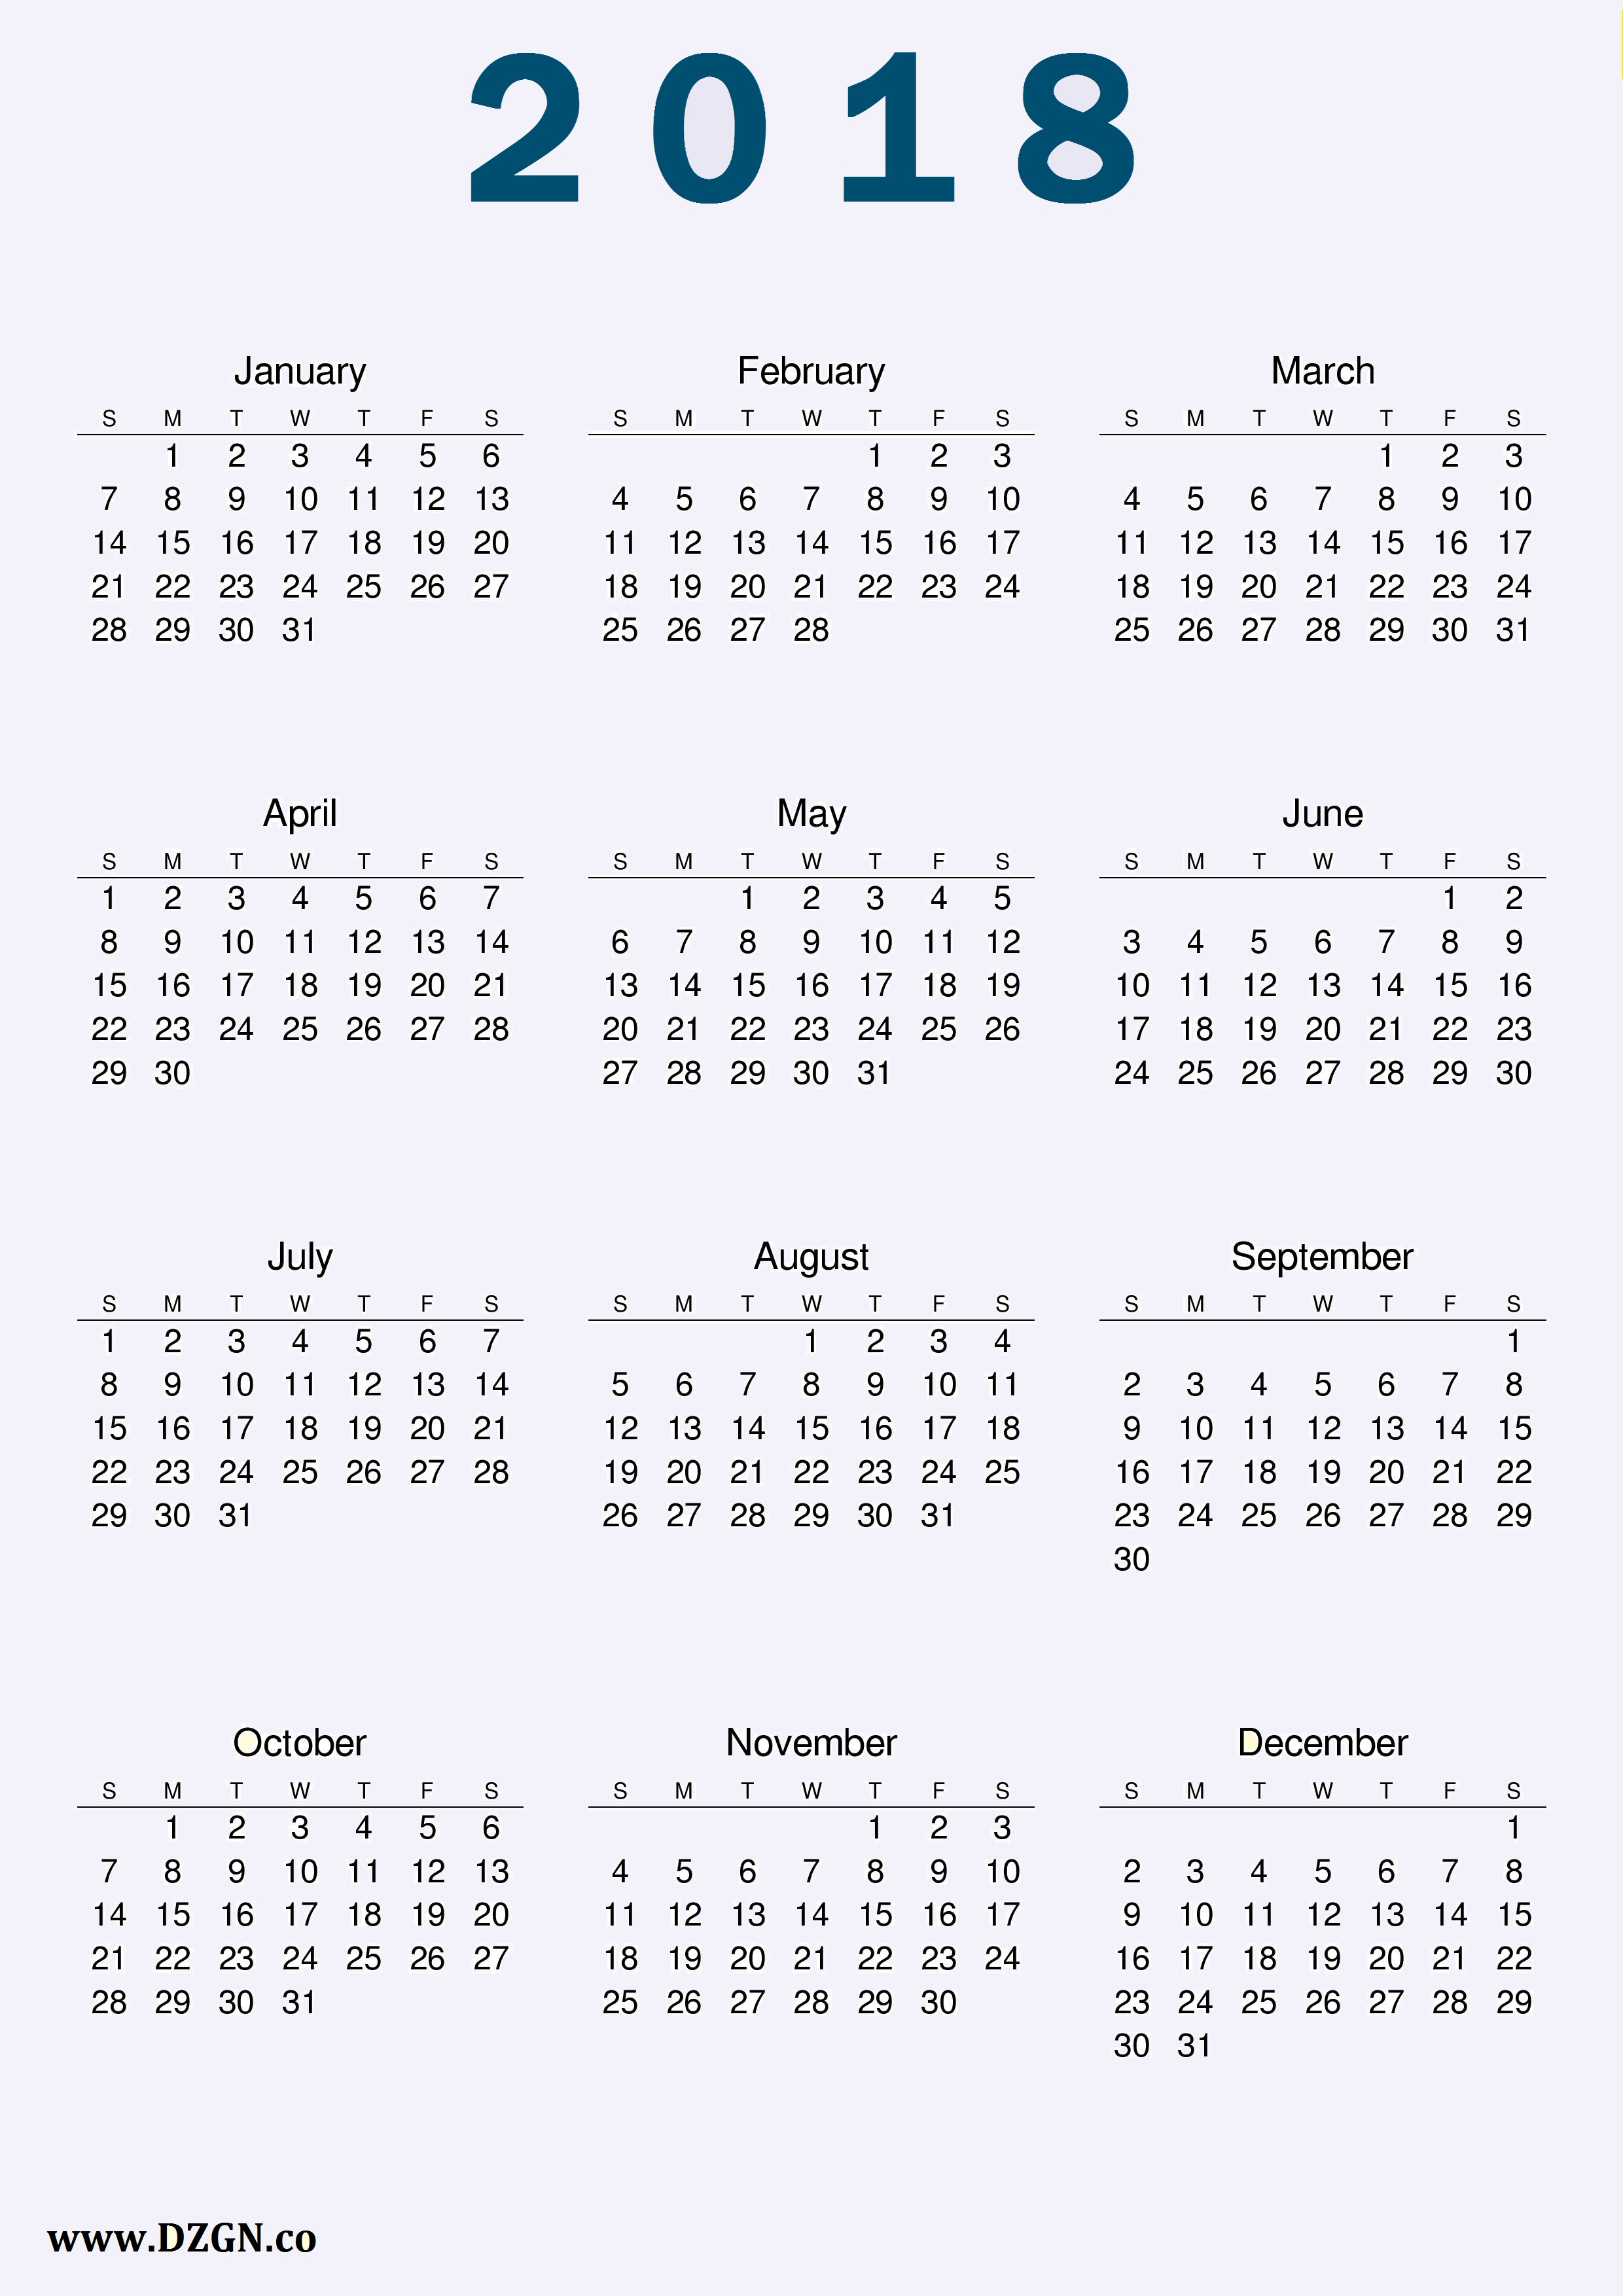 Family Calendar 2018 Printable : Calendar printable calendars posters